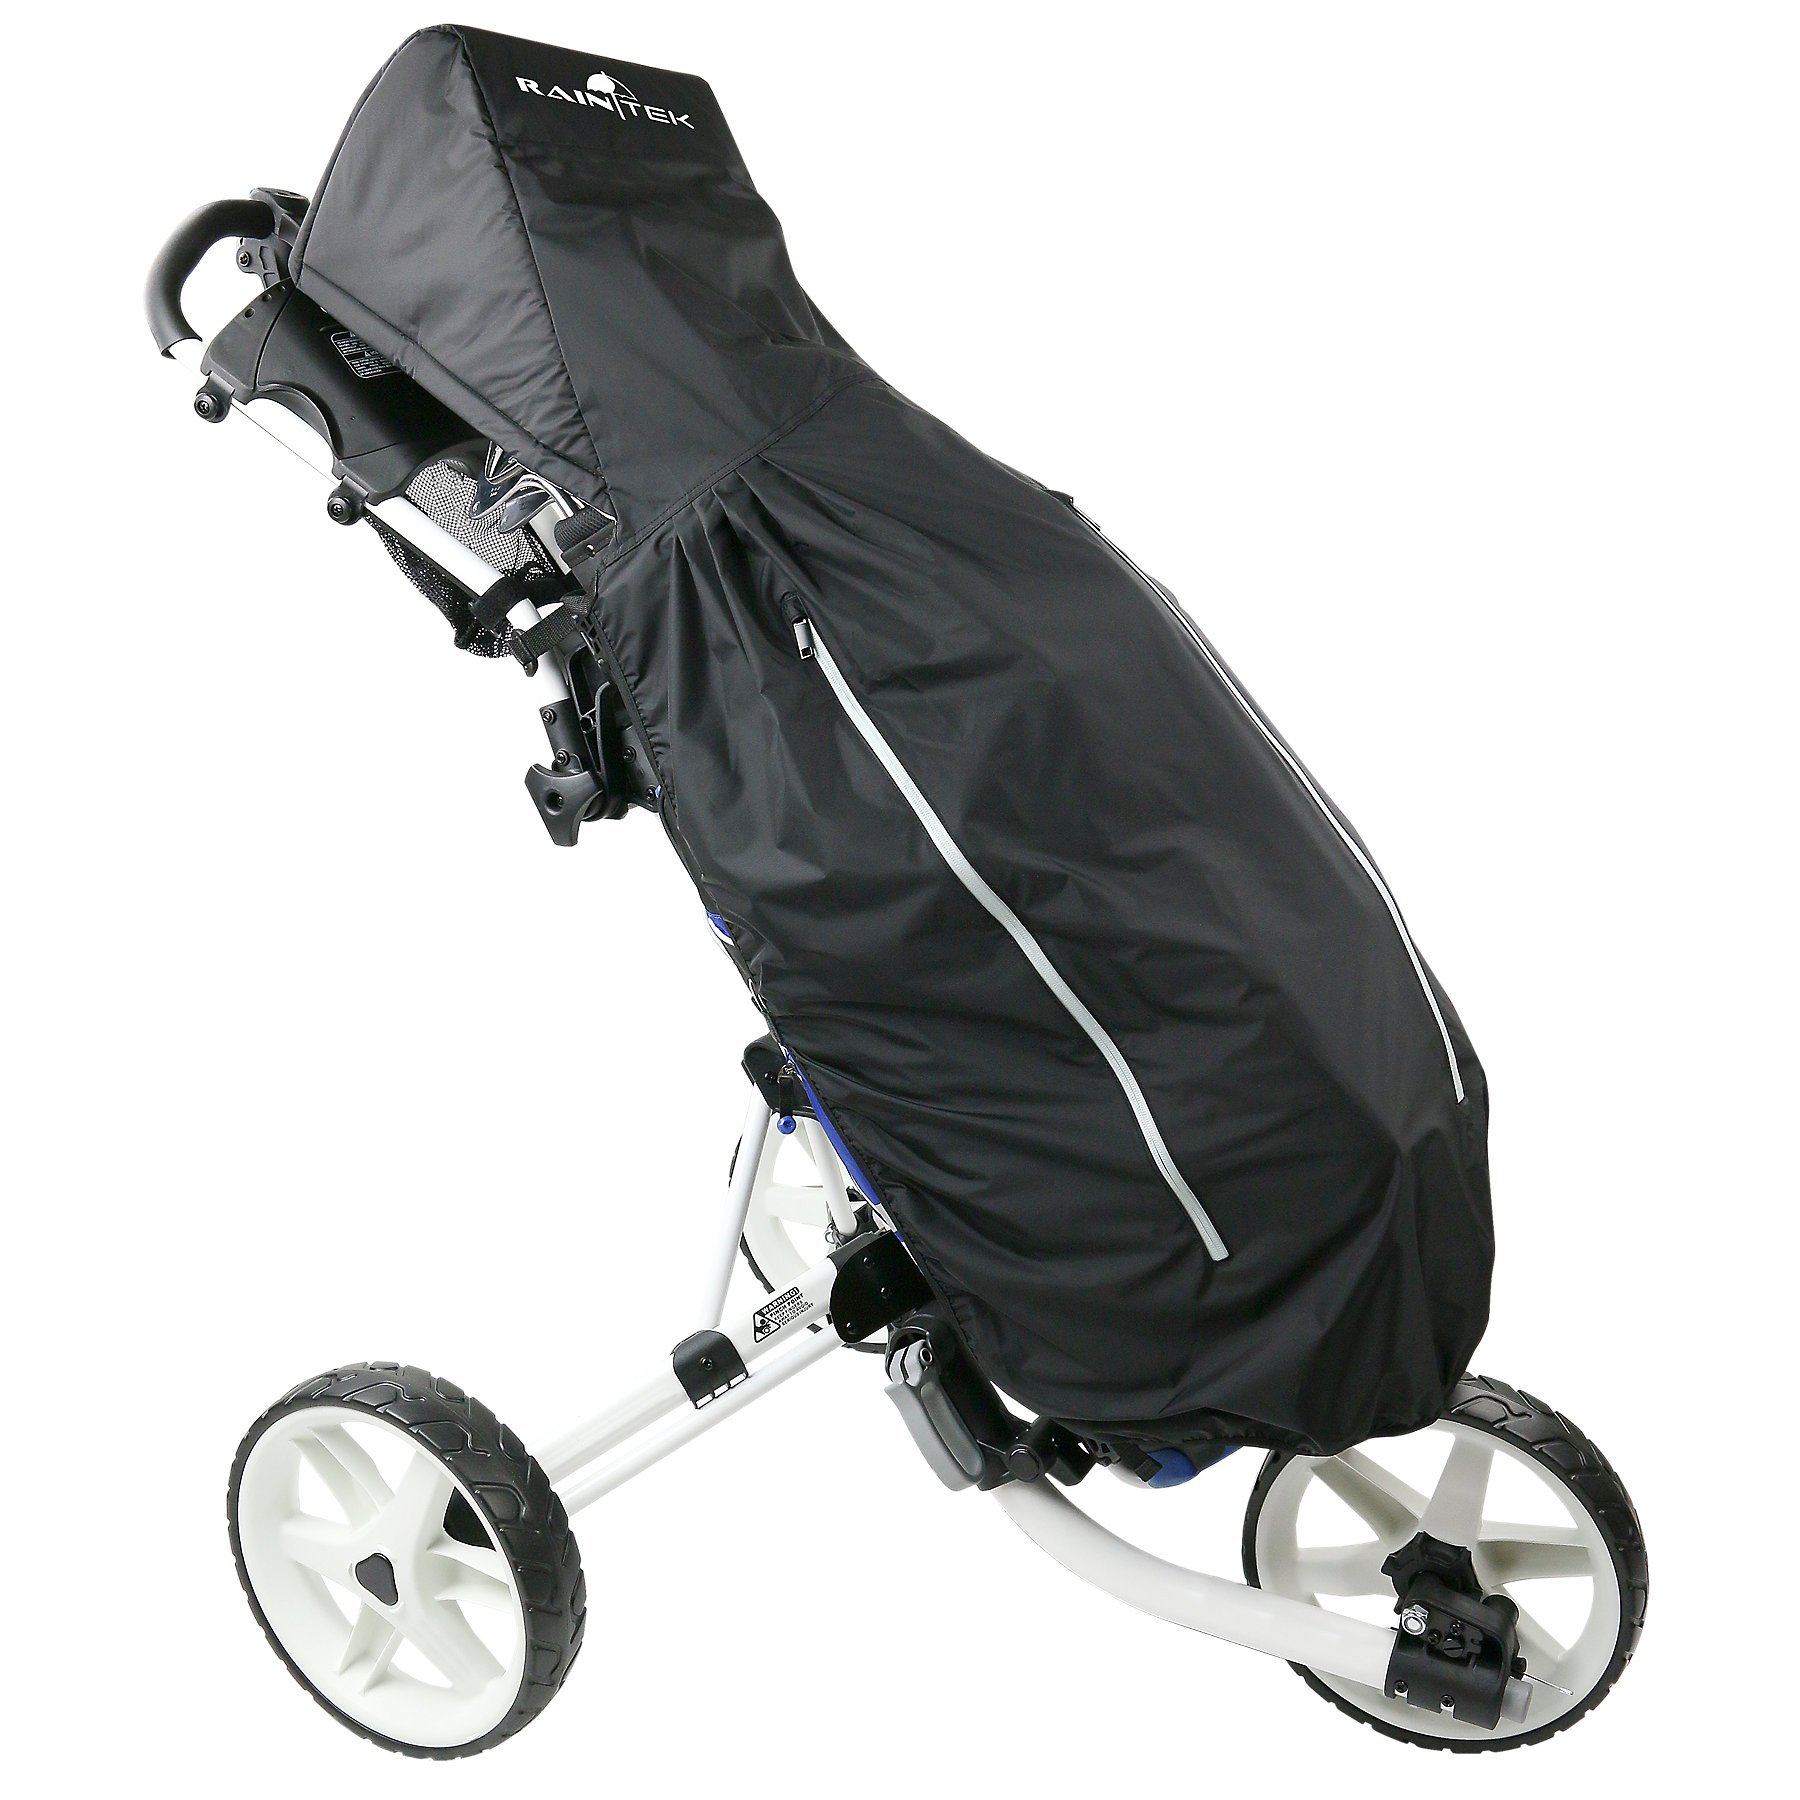 Rain Tek Waterproof Golf Bag Rain Protection Cover with Hood for Golf Push Carts by ProActive Sports